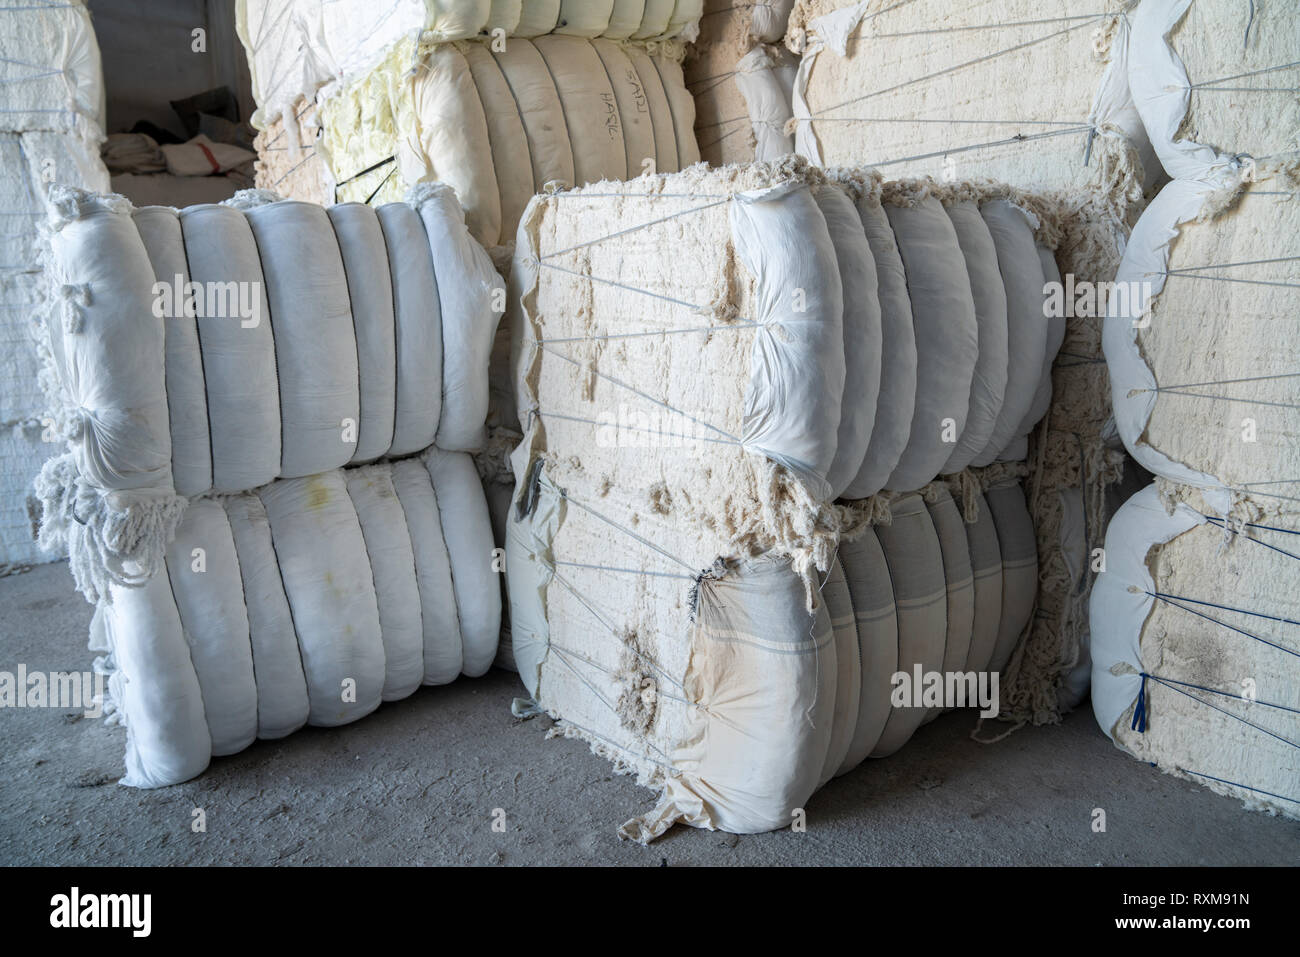 Interior of a storehouse .Stacked waste textile scraps In Bales - Stock Image